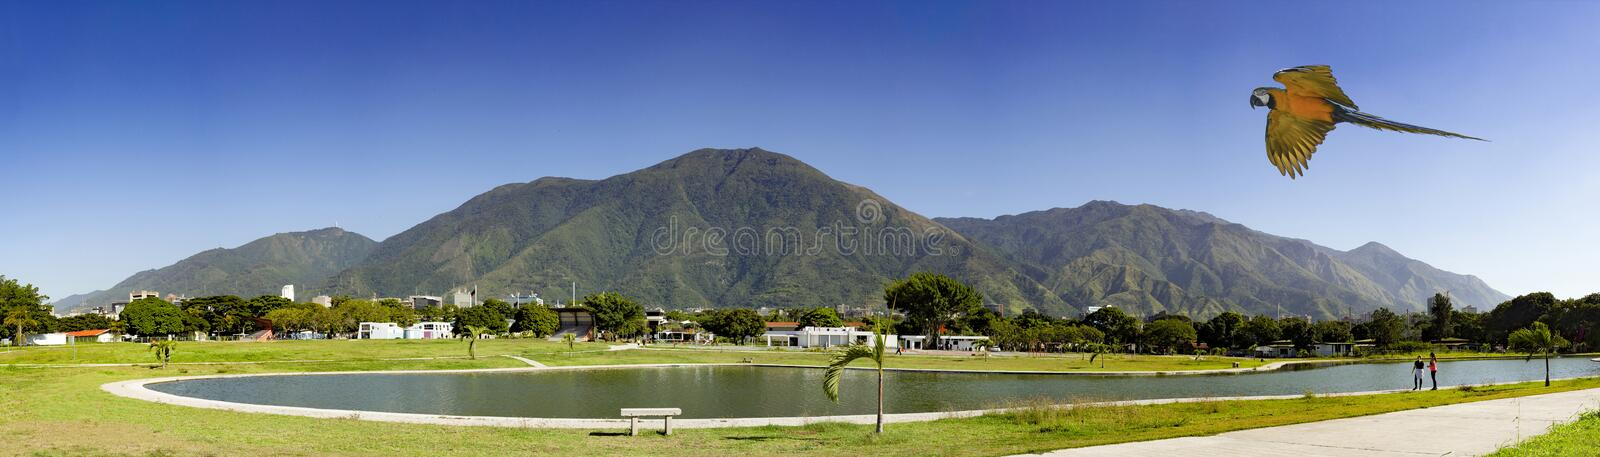 View of the iconic Caracas mountain el Avila or Waraira Repano and flying macaw.  royalty free stock photos